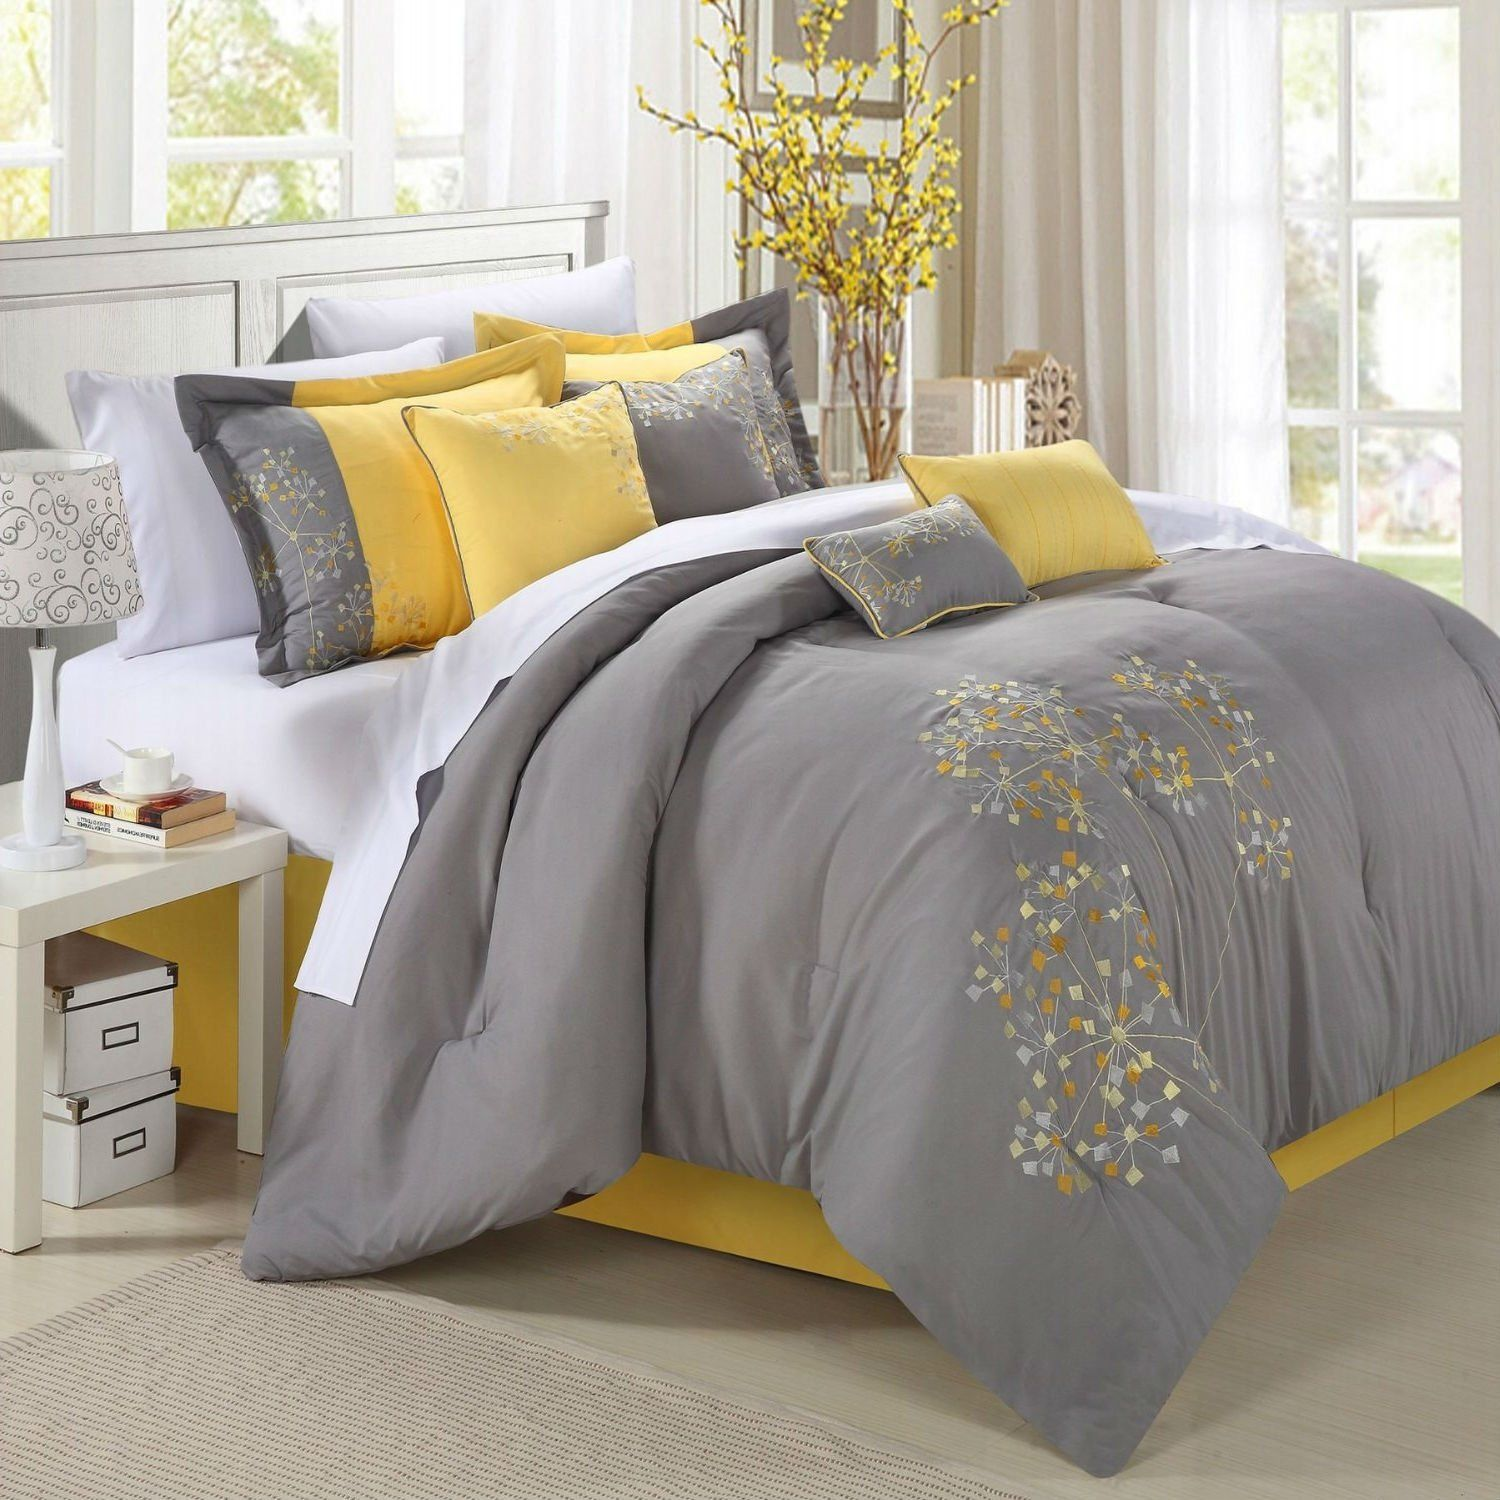 This King Size Yellow Grey Floral 8 Piece Comforter Set Is Over